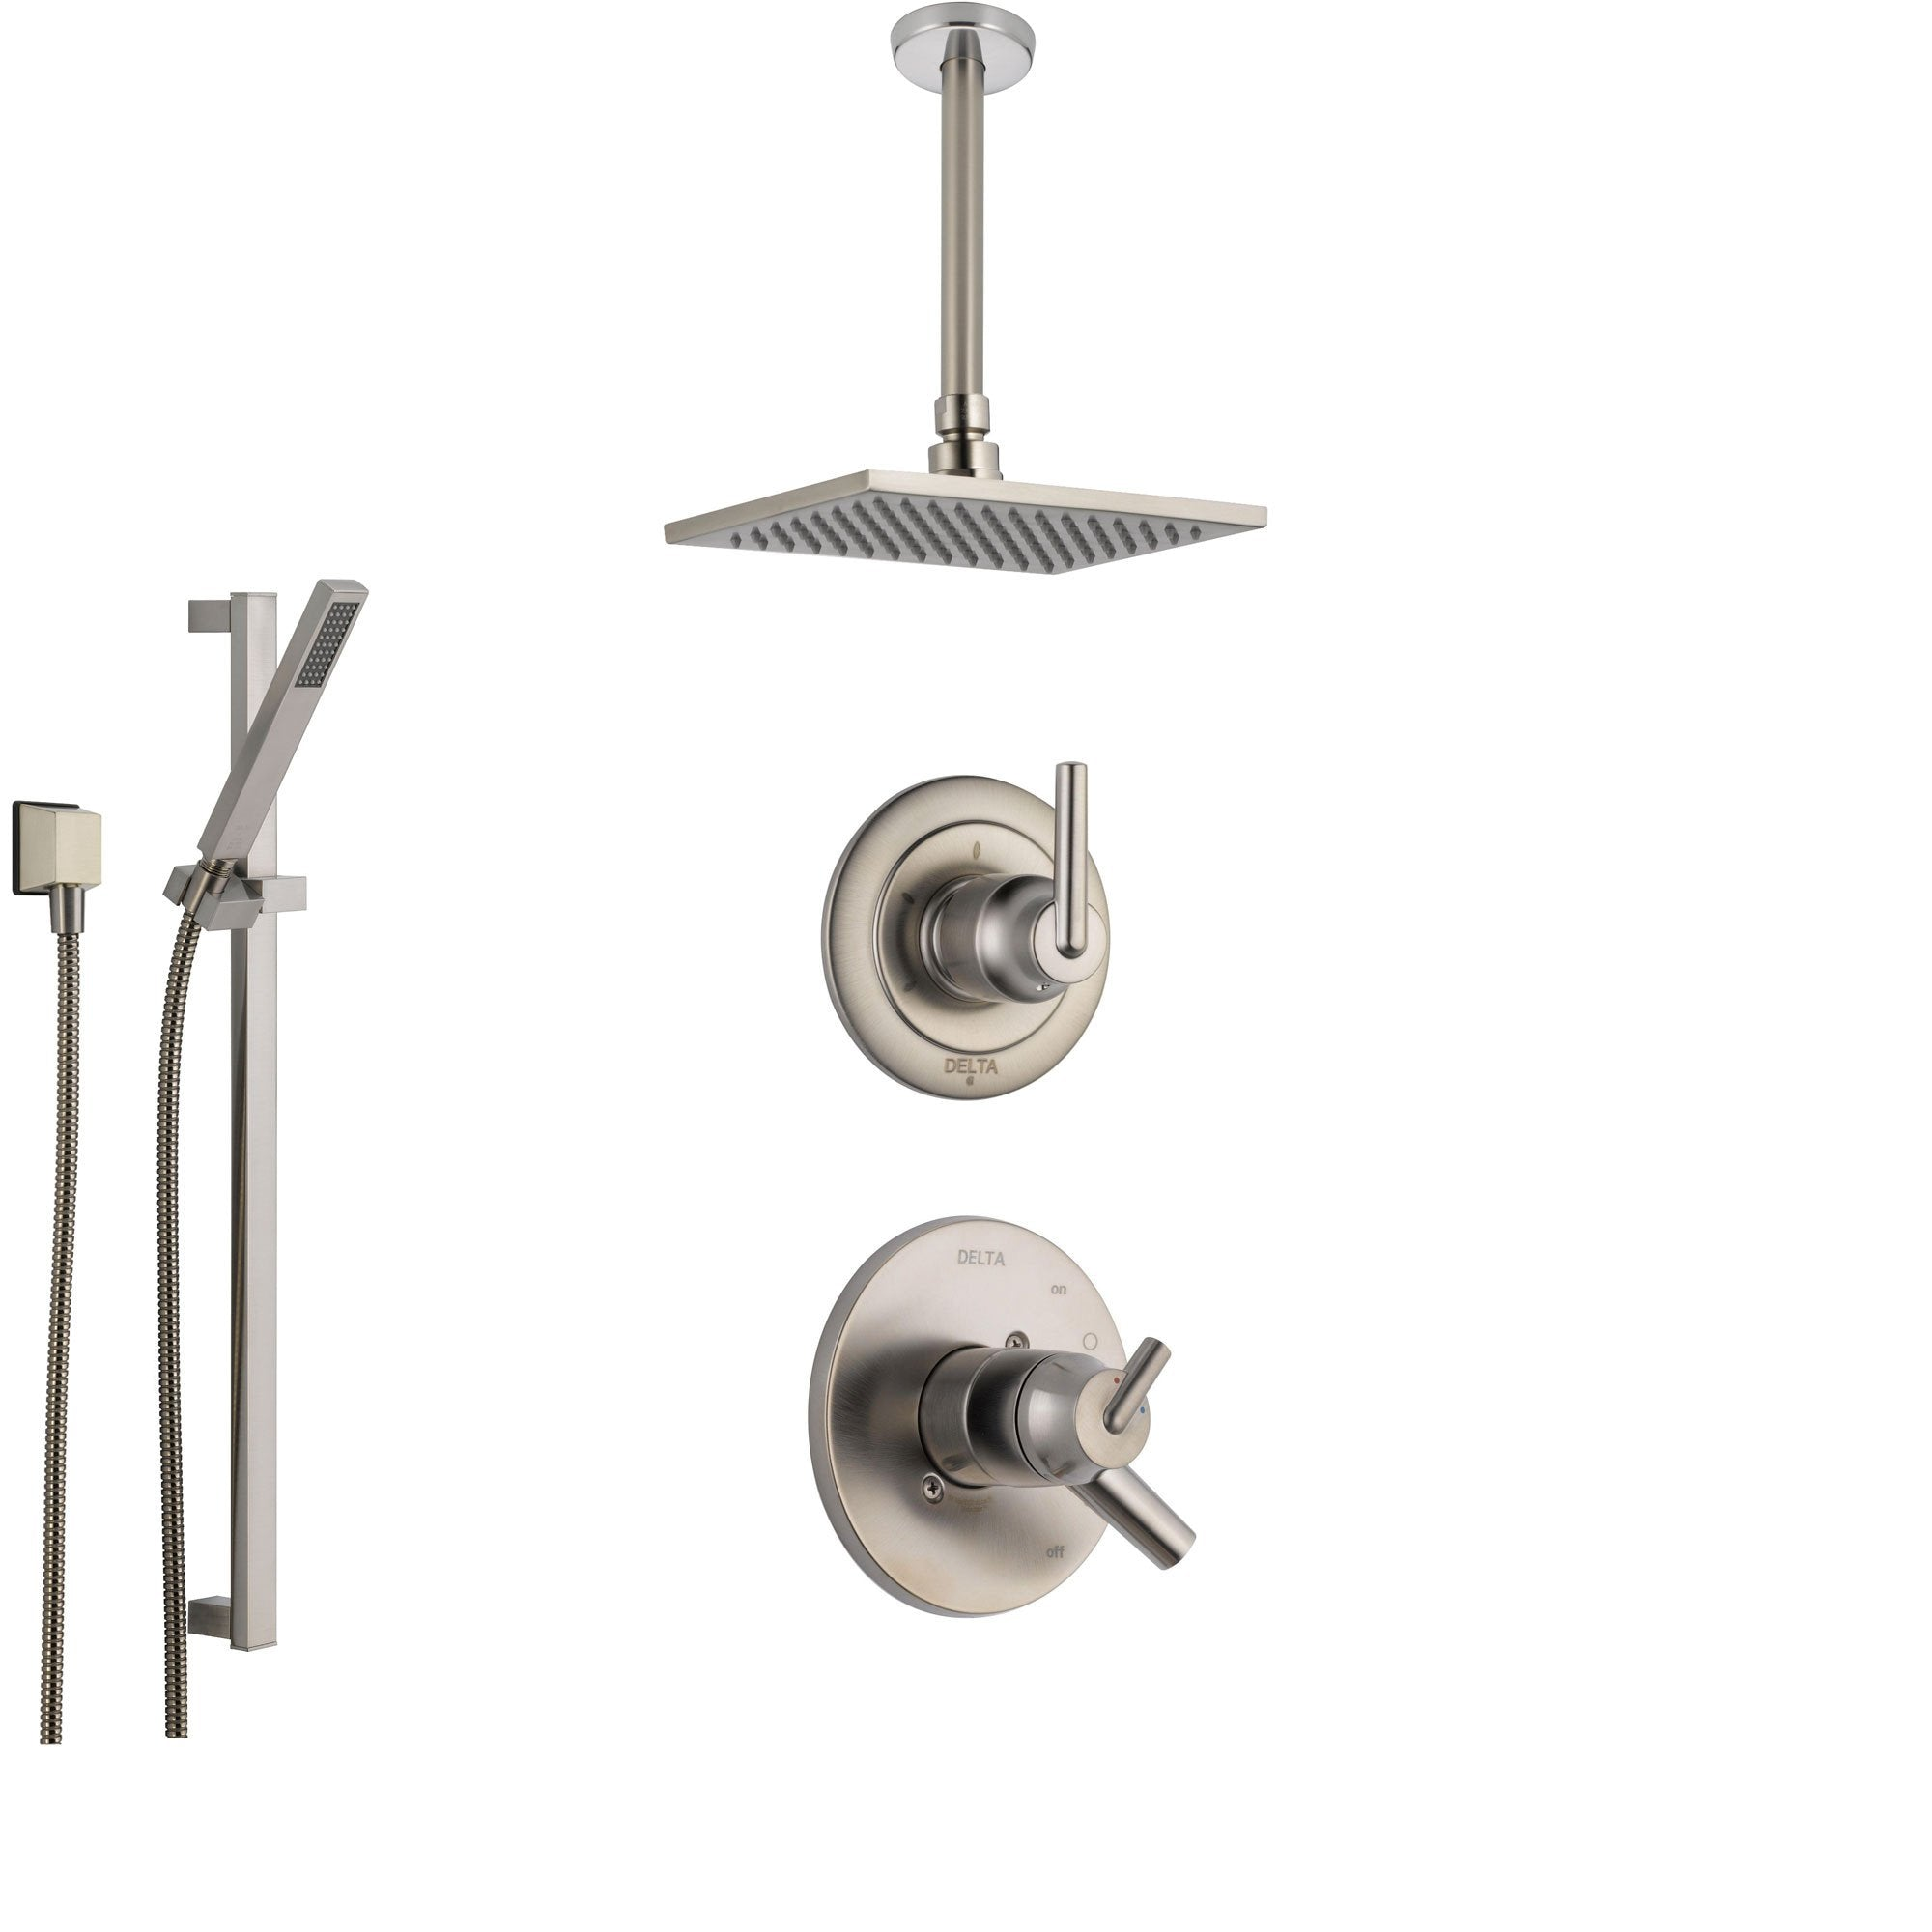 Delta Trinsic Stainless Steel Shower System with Dual Control Shower Handle, 3-setting Diverter, Large Square Ceiling Mount Showerhead, and Handheld Shower SS175985SS